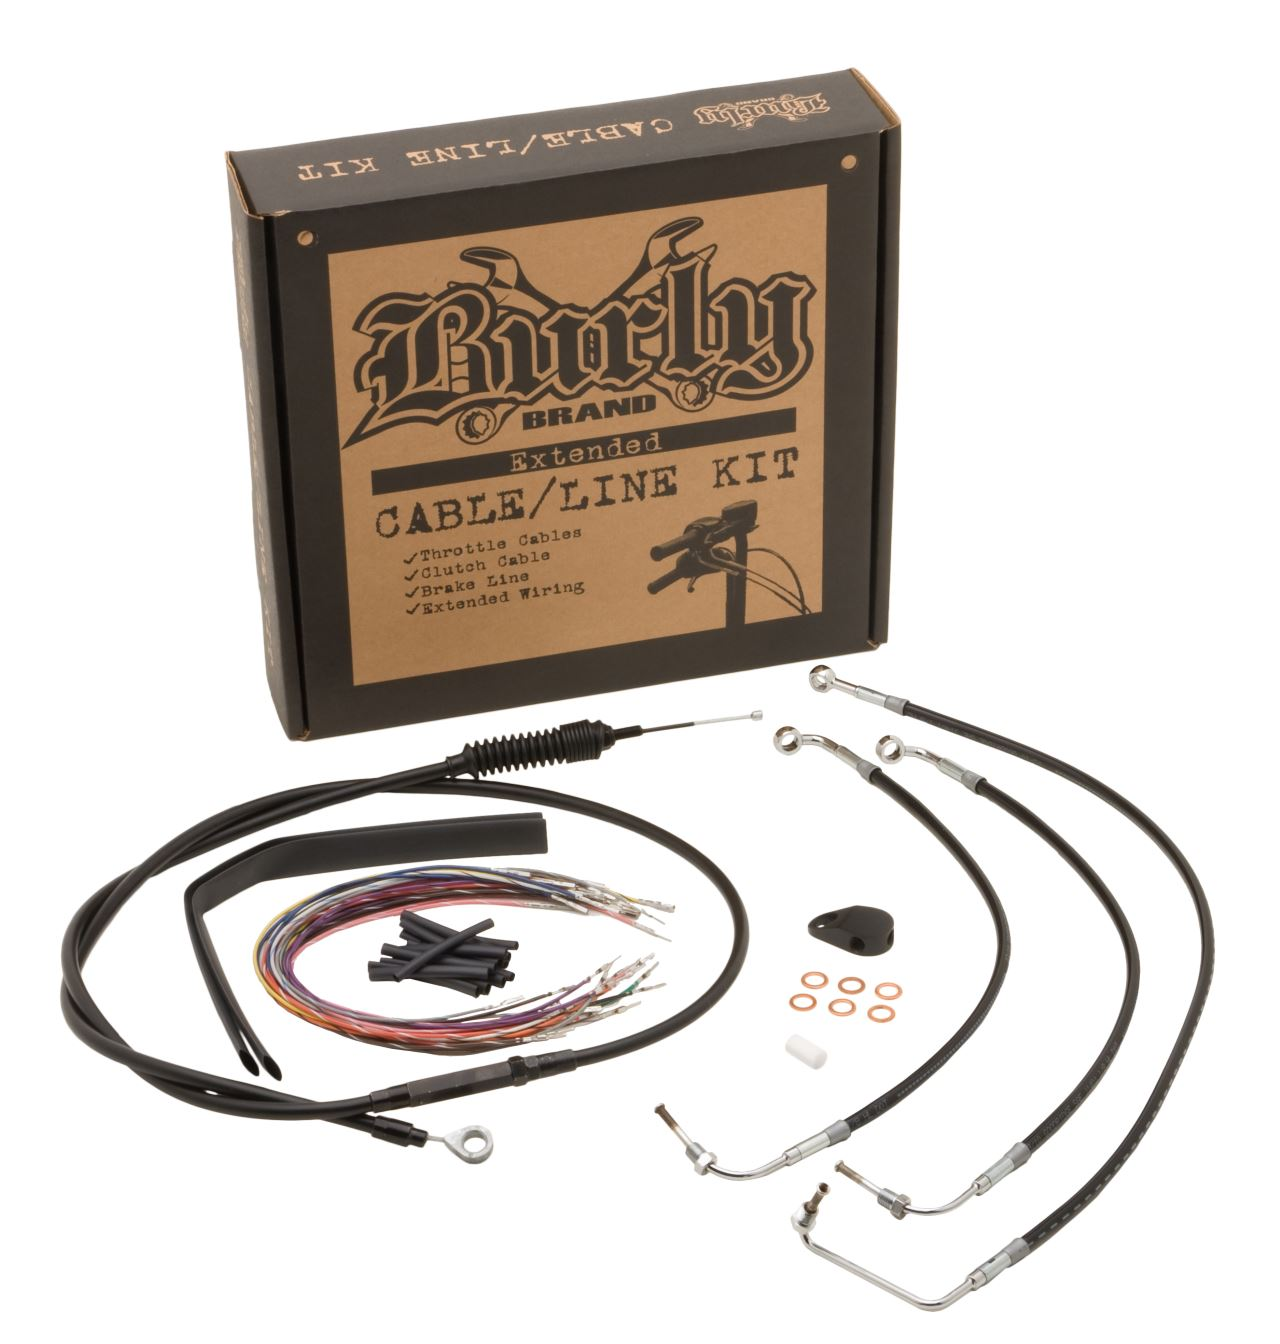 Black Cable Kits For Baggers | CABLE KITS | Burly Brand